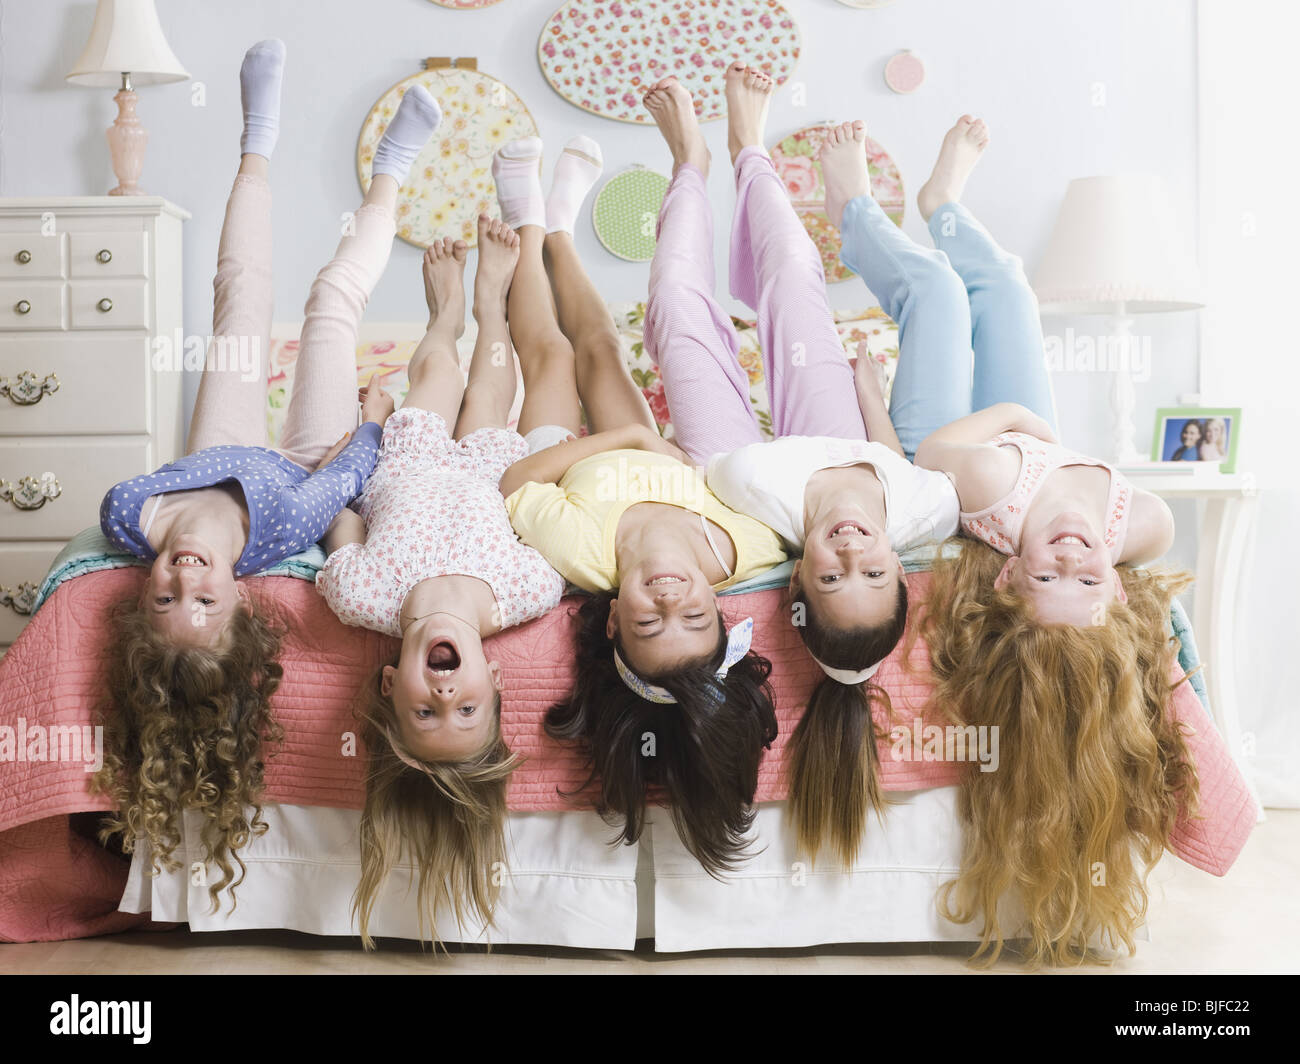 five girls on a bed upside down - Stock Image